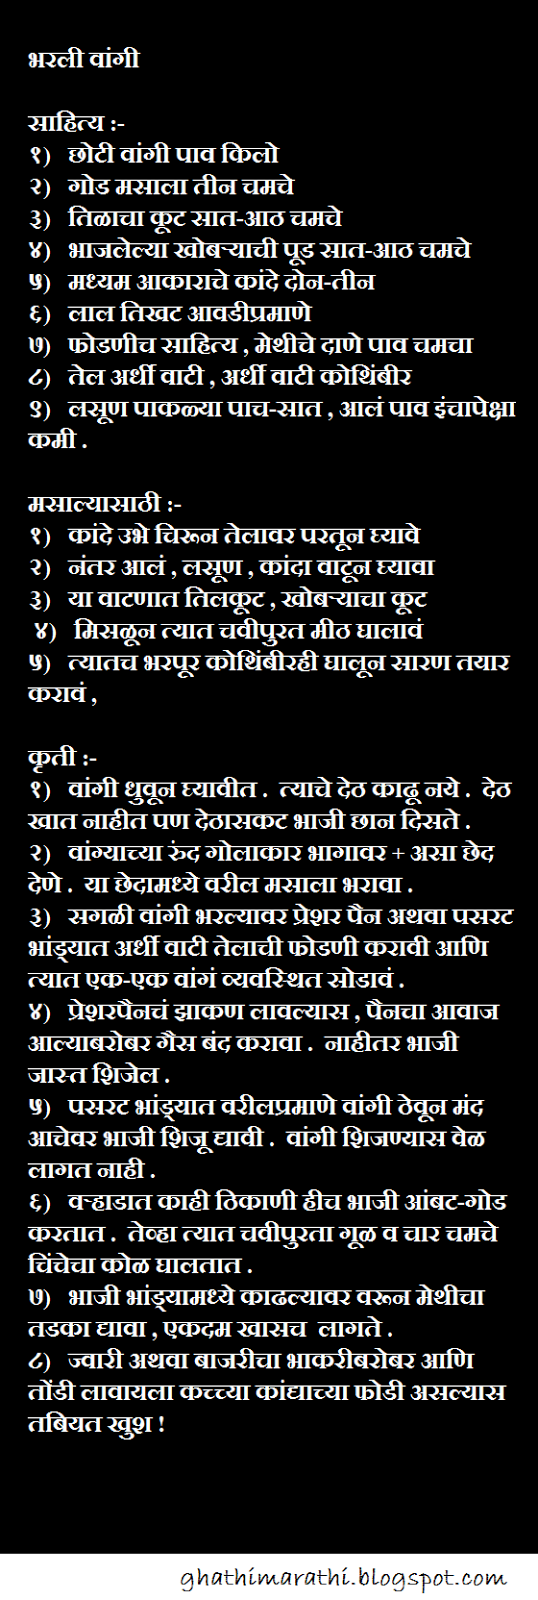 marathi recipes bharali vangi1